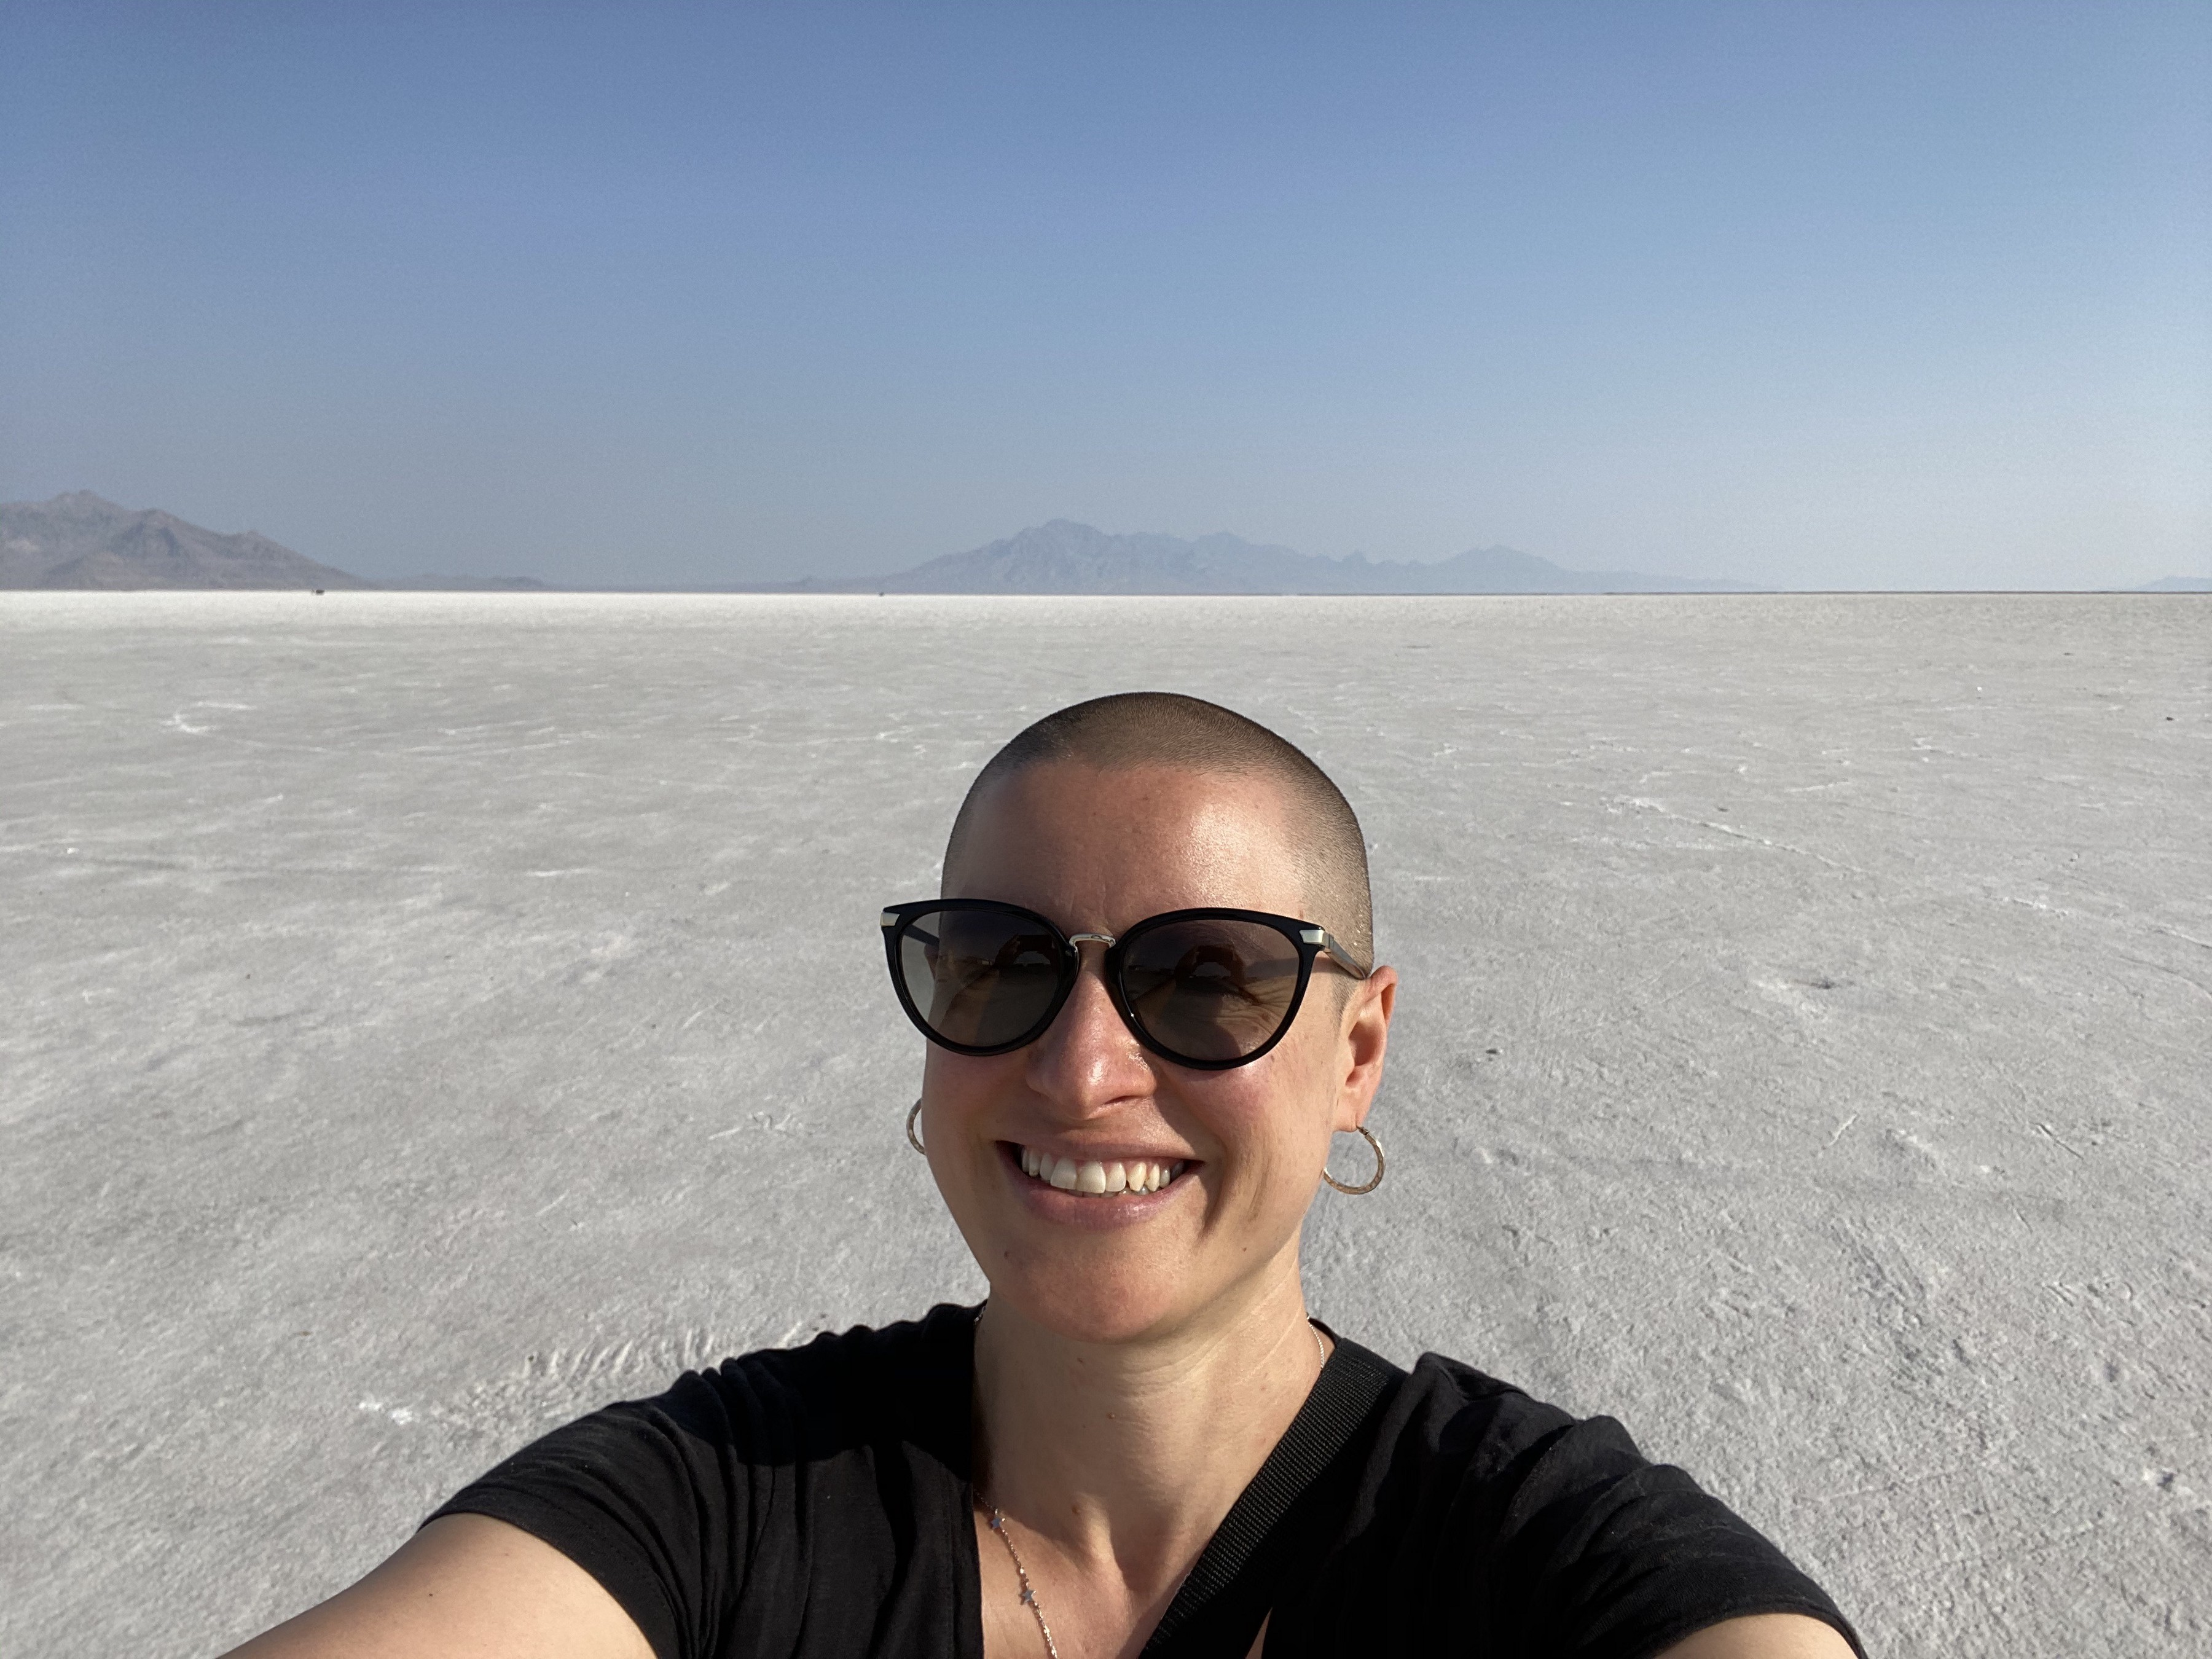 Sarah Dopp smiling with a large stretch of salt flats in the background. She is white, has shaved head, wearing sunglasses.